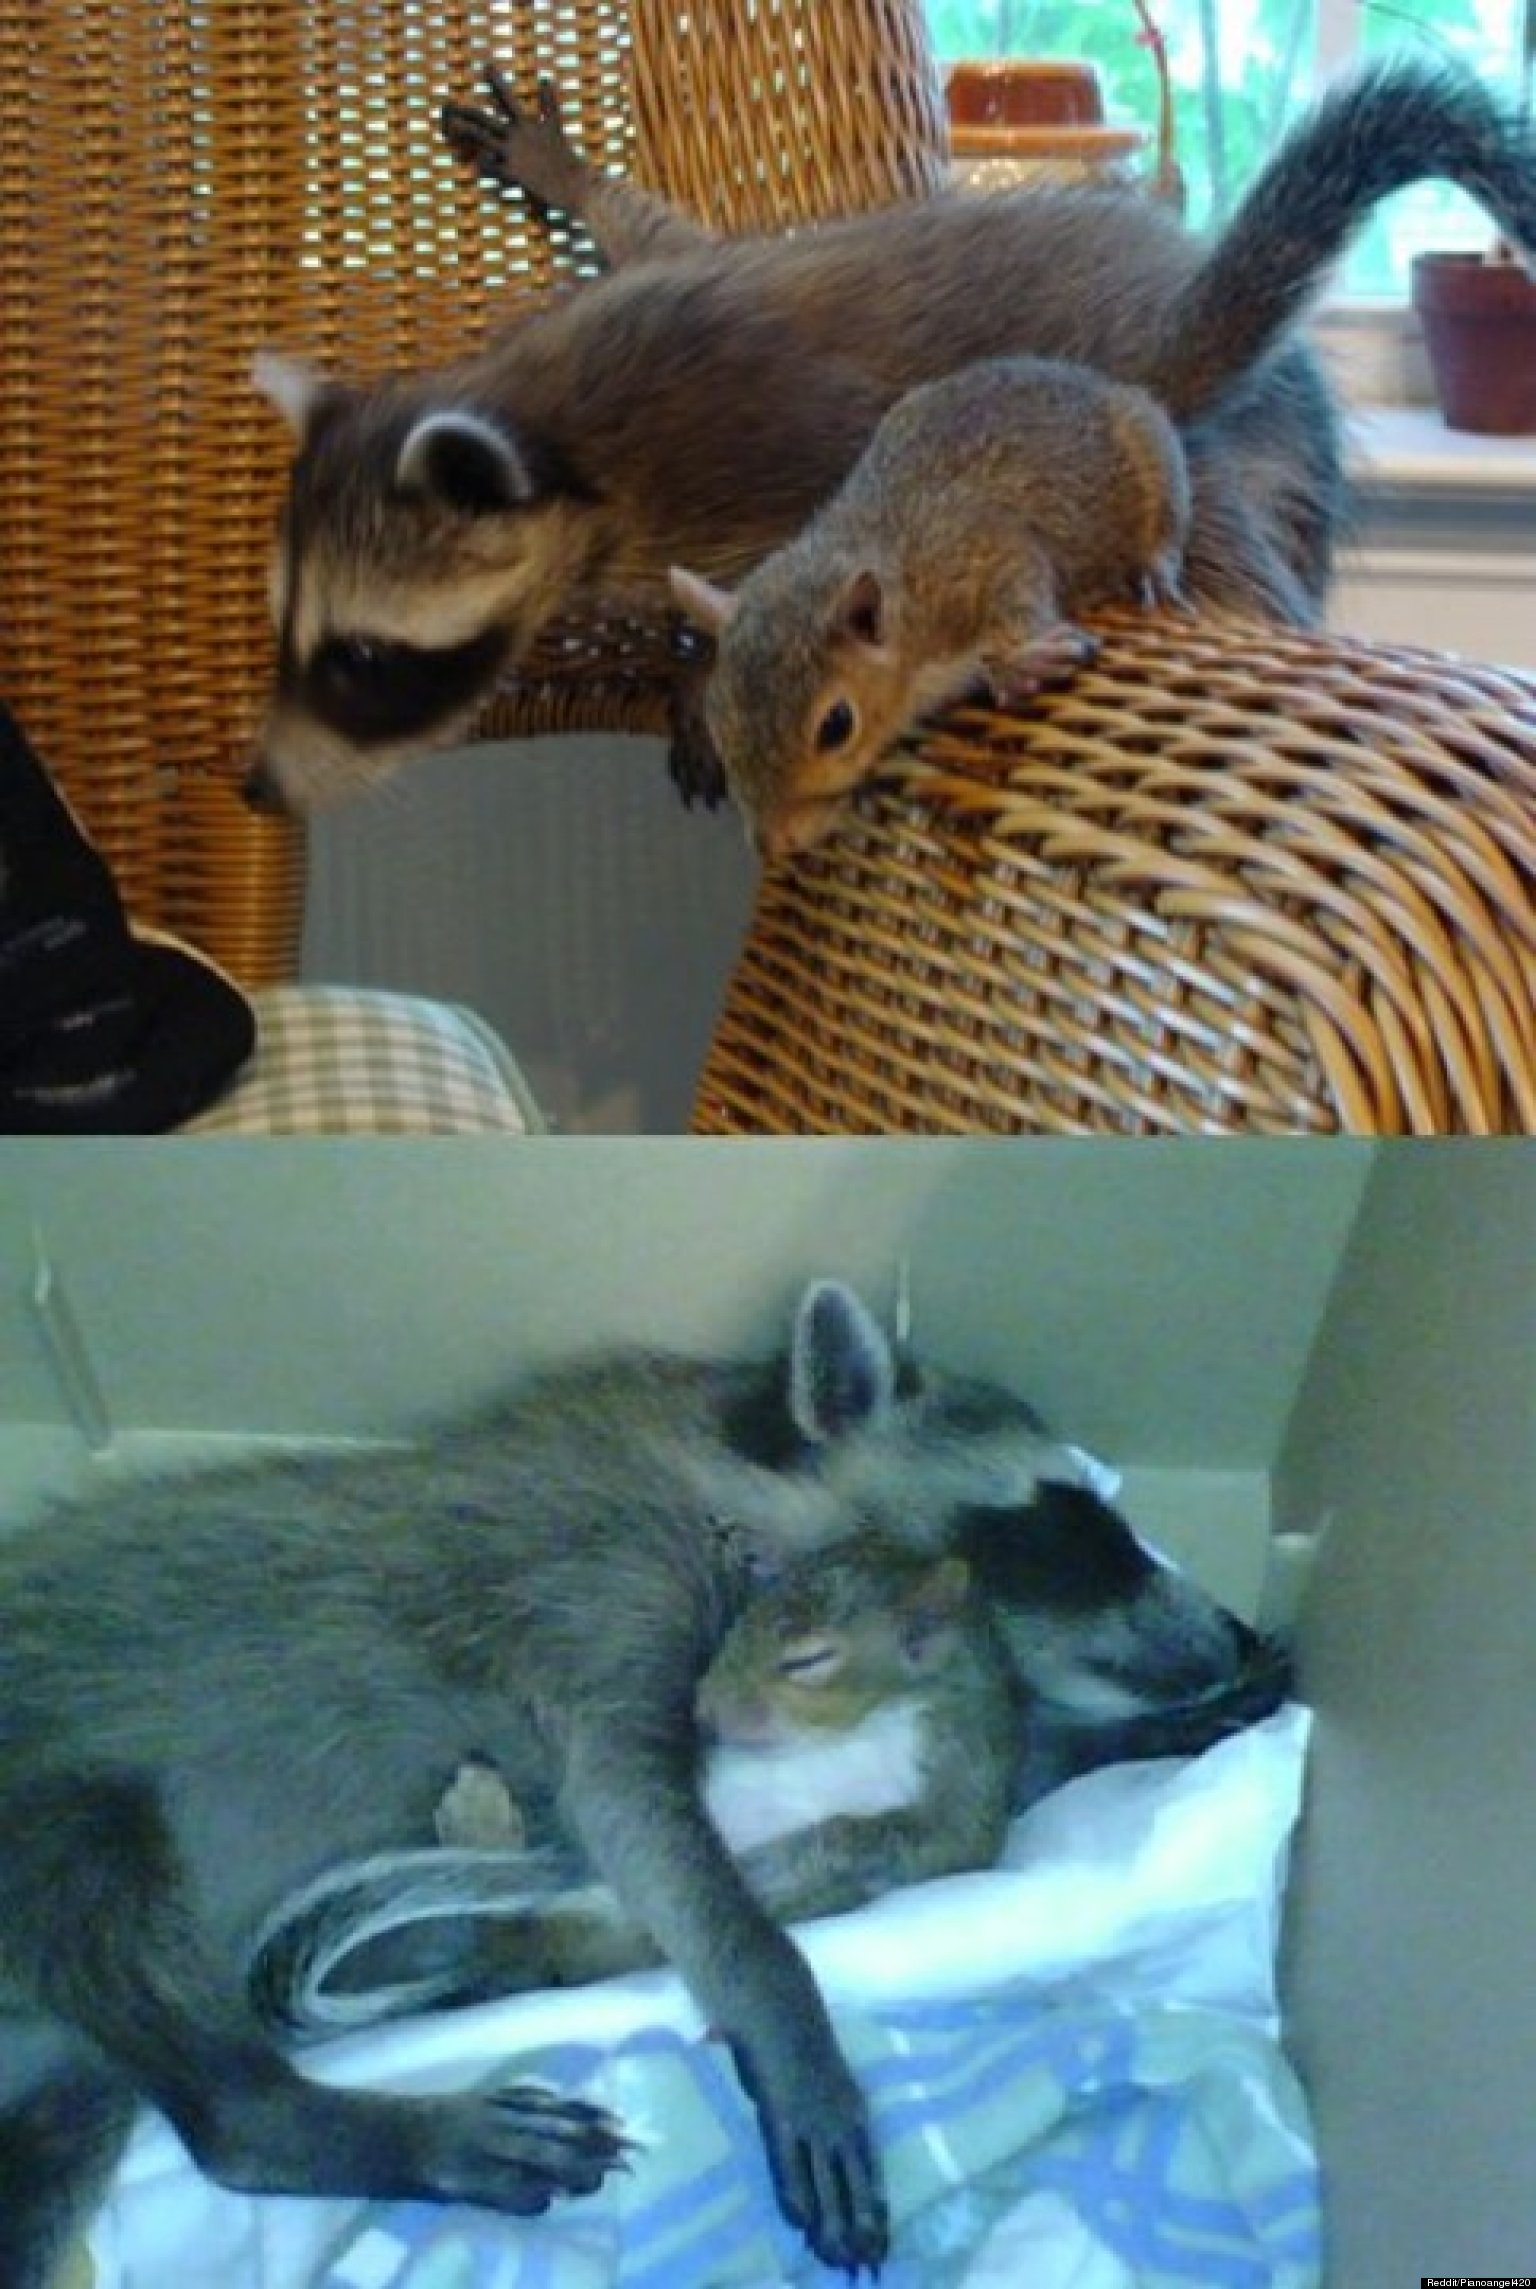 animals raccoons weasels friends - photo #10